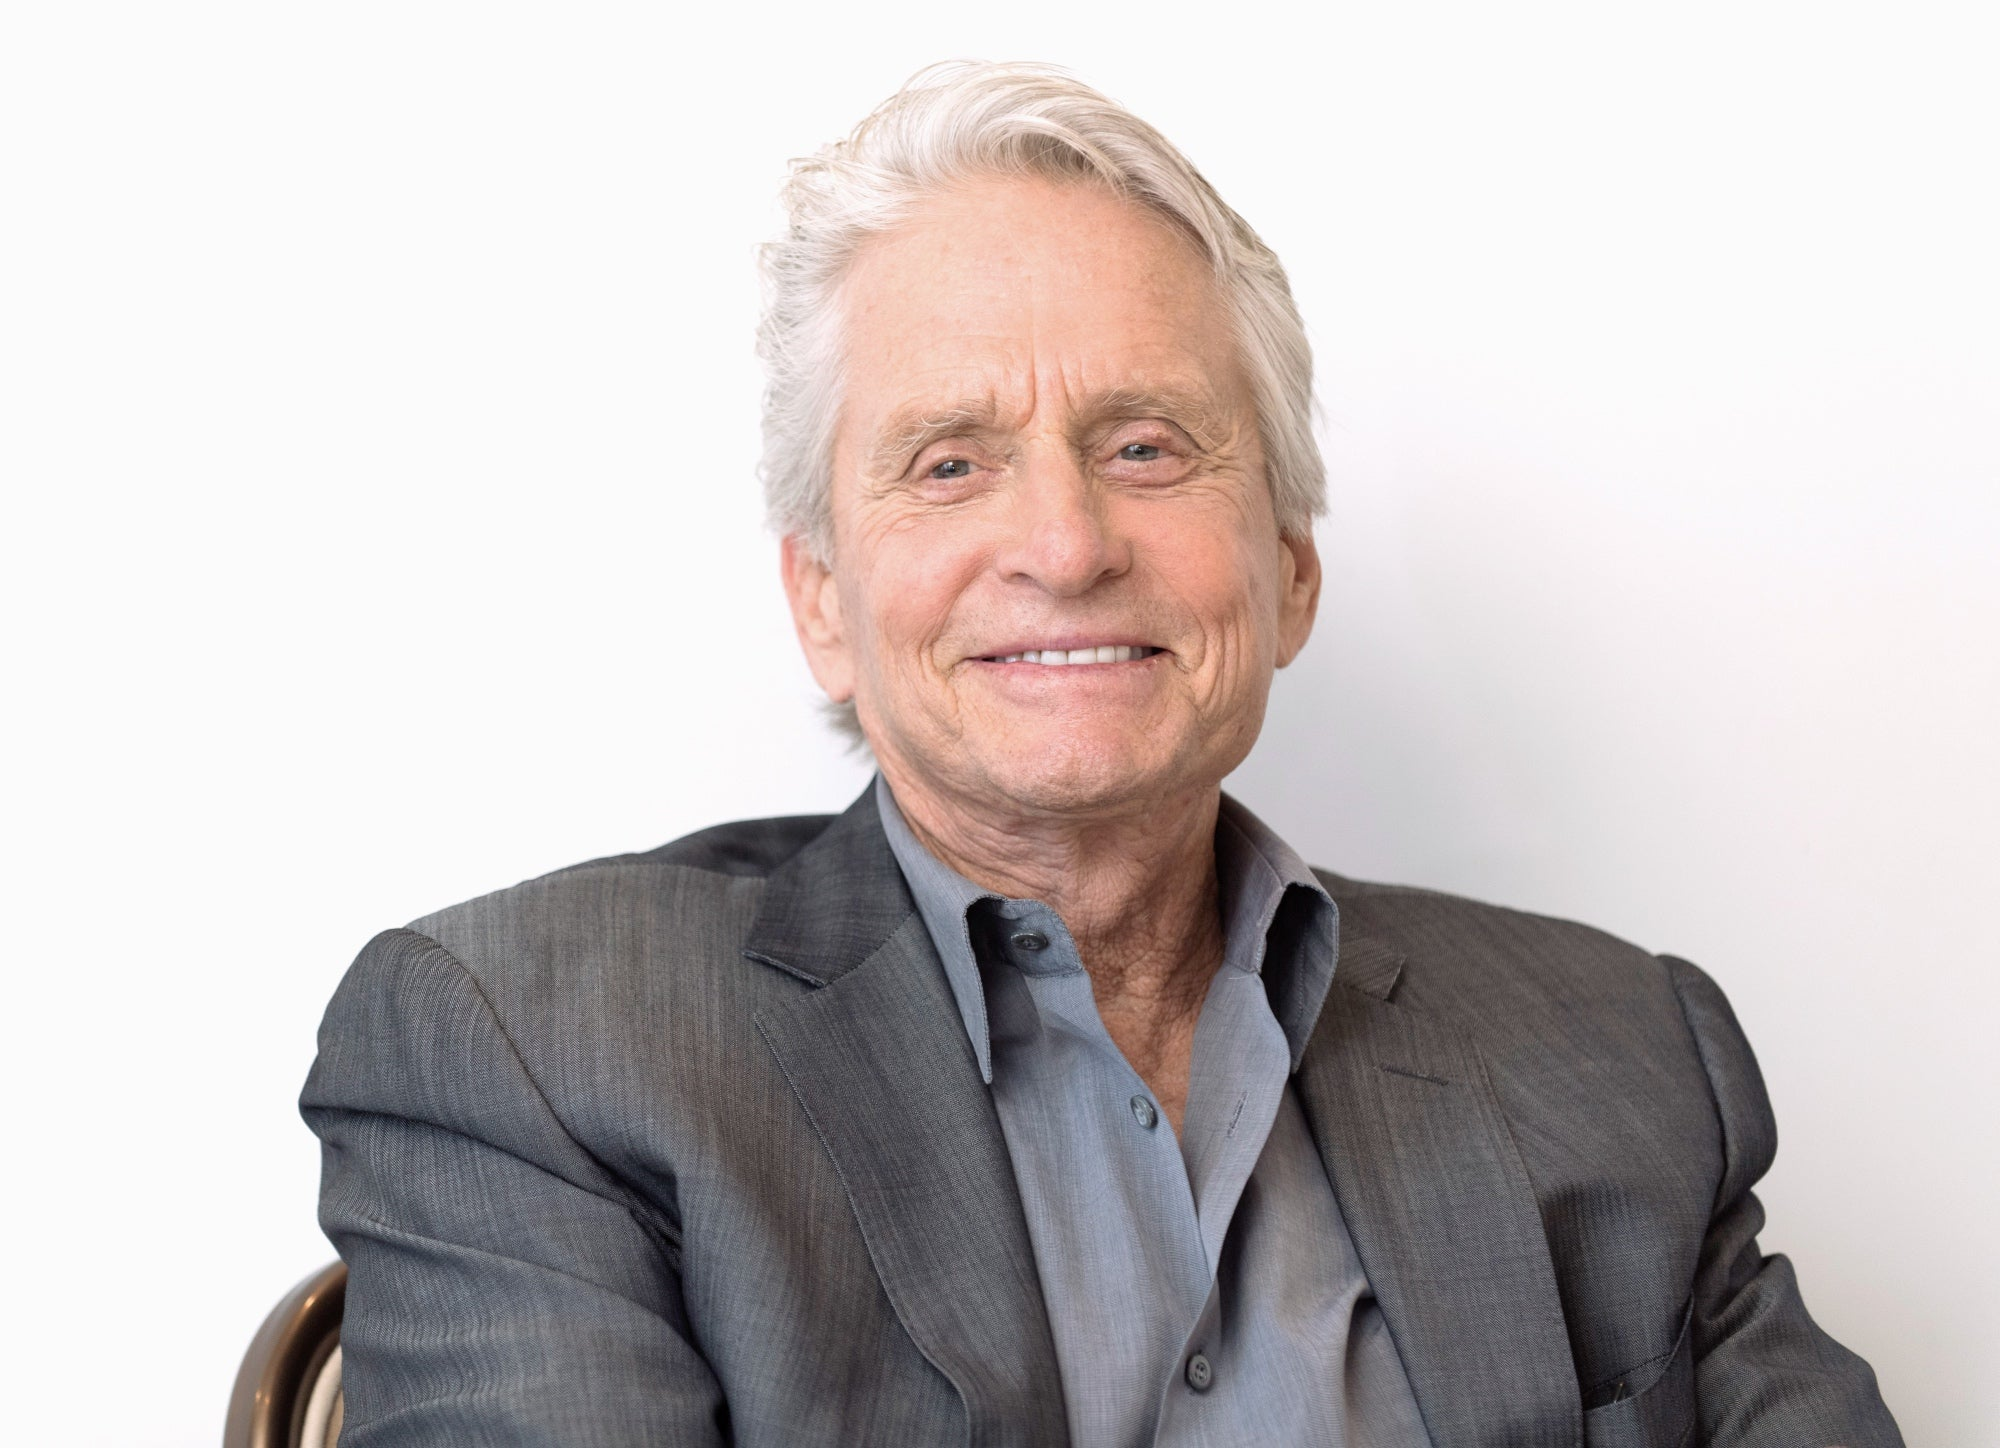 Actr and producer Michael Douglas, Golden Globe winner and Cecil B. deMille recipient